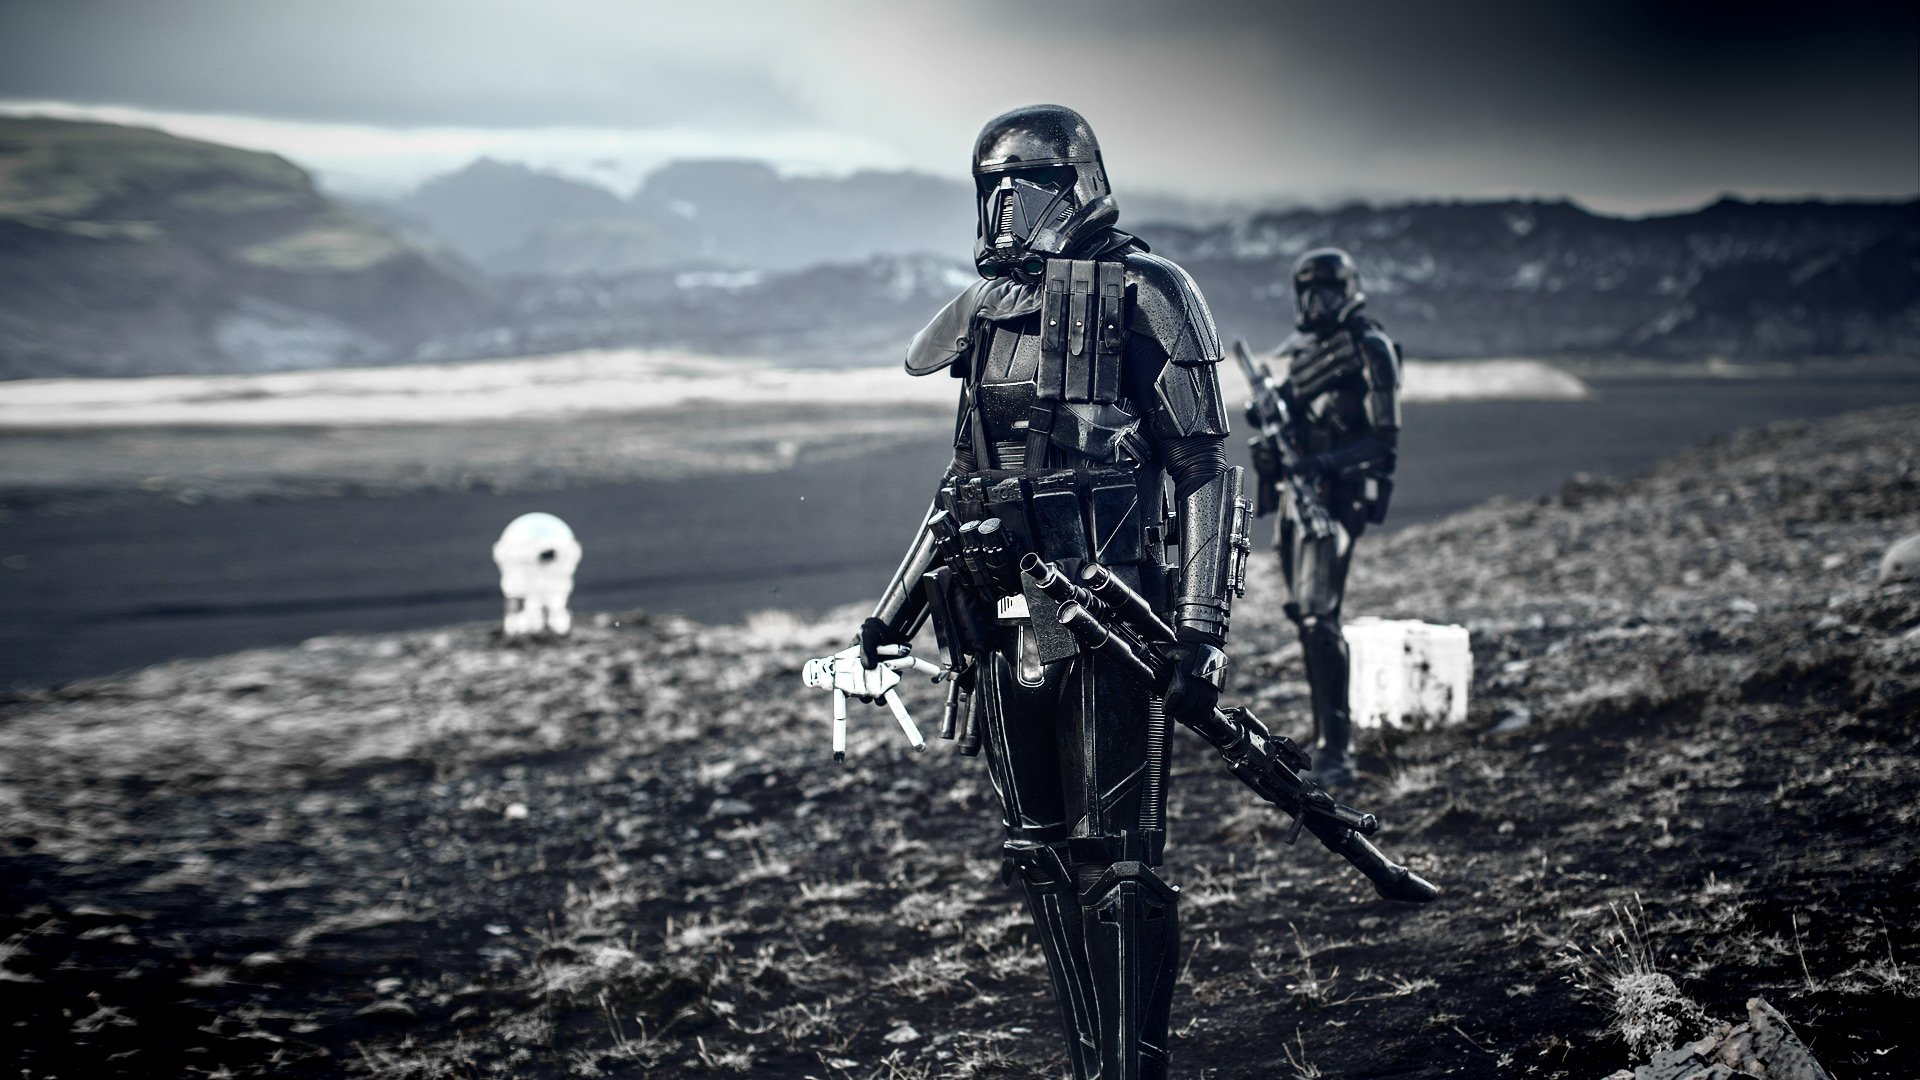 8 Death Trooper Hd Wallpapers Background Images Wallpaper Abyss